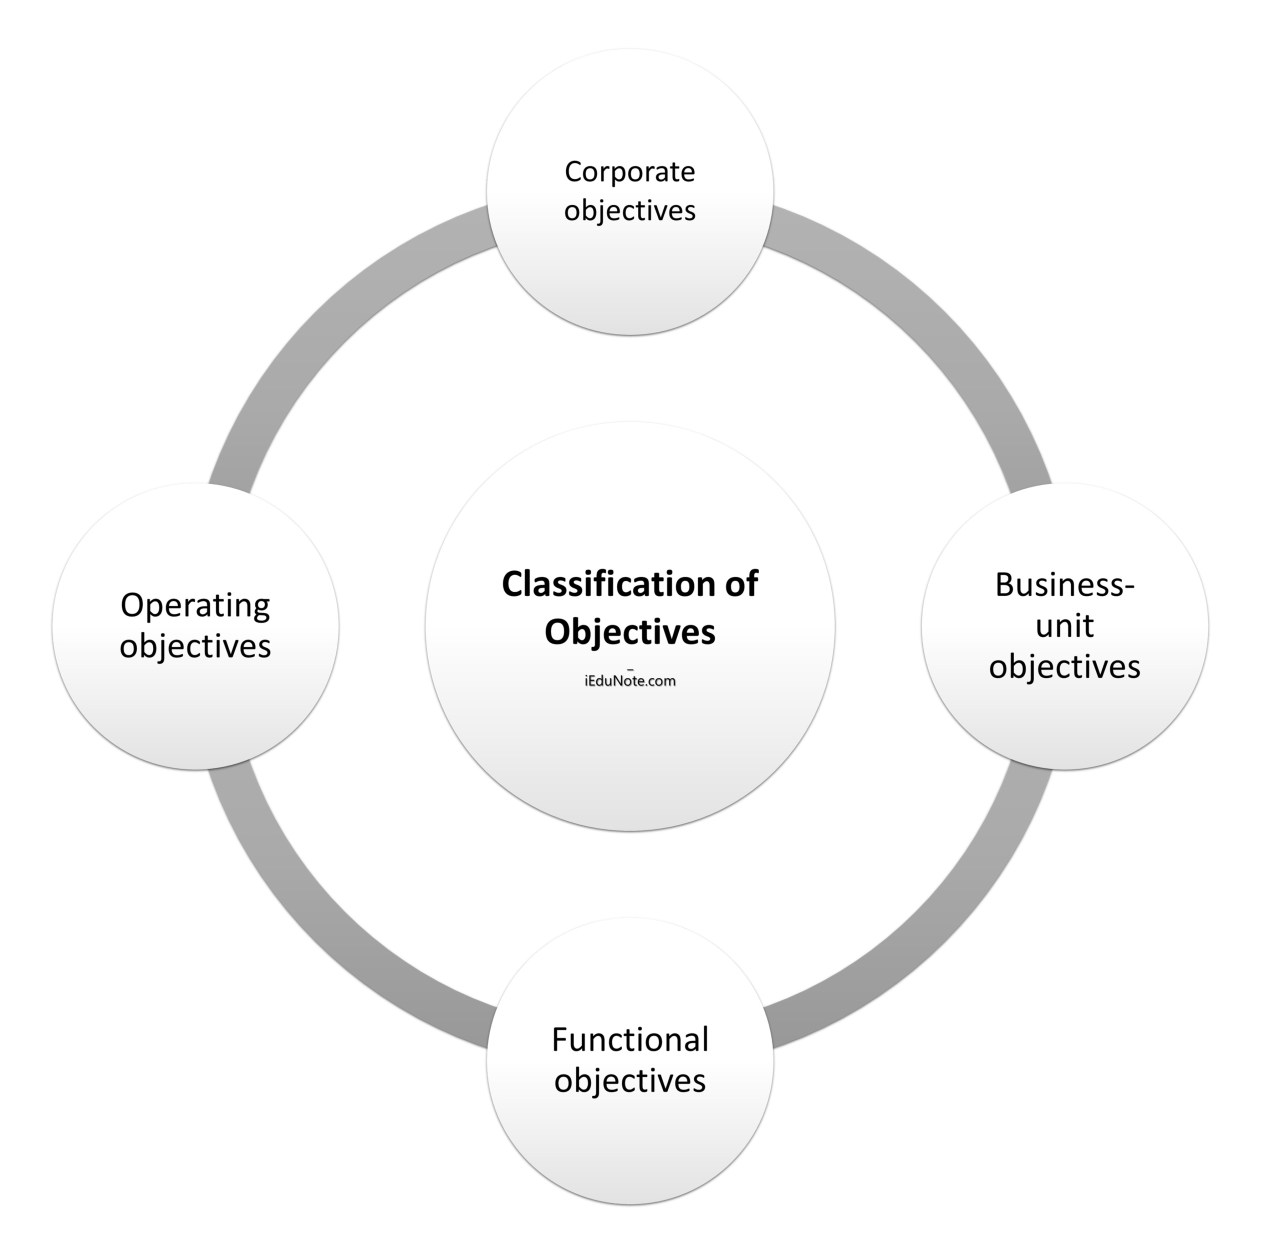 Classification of Objectives